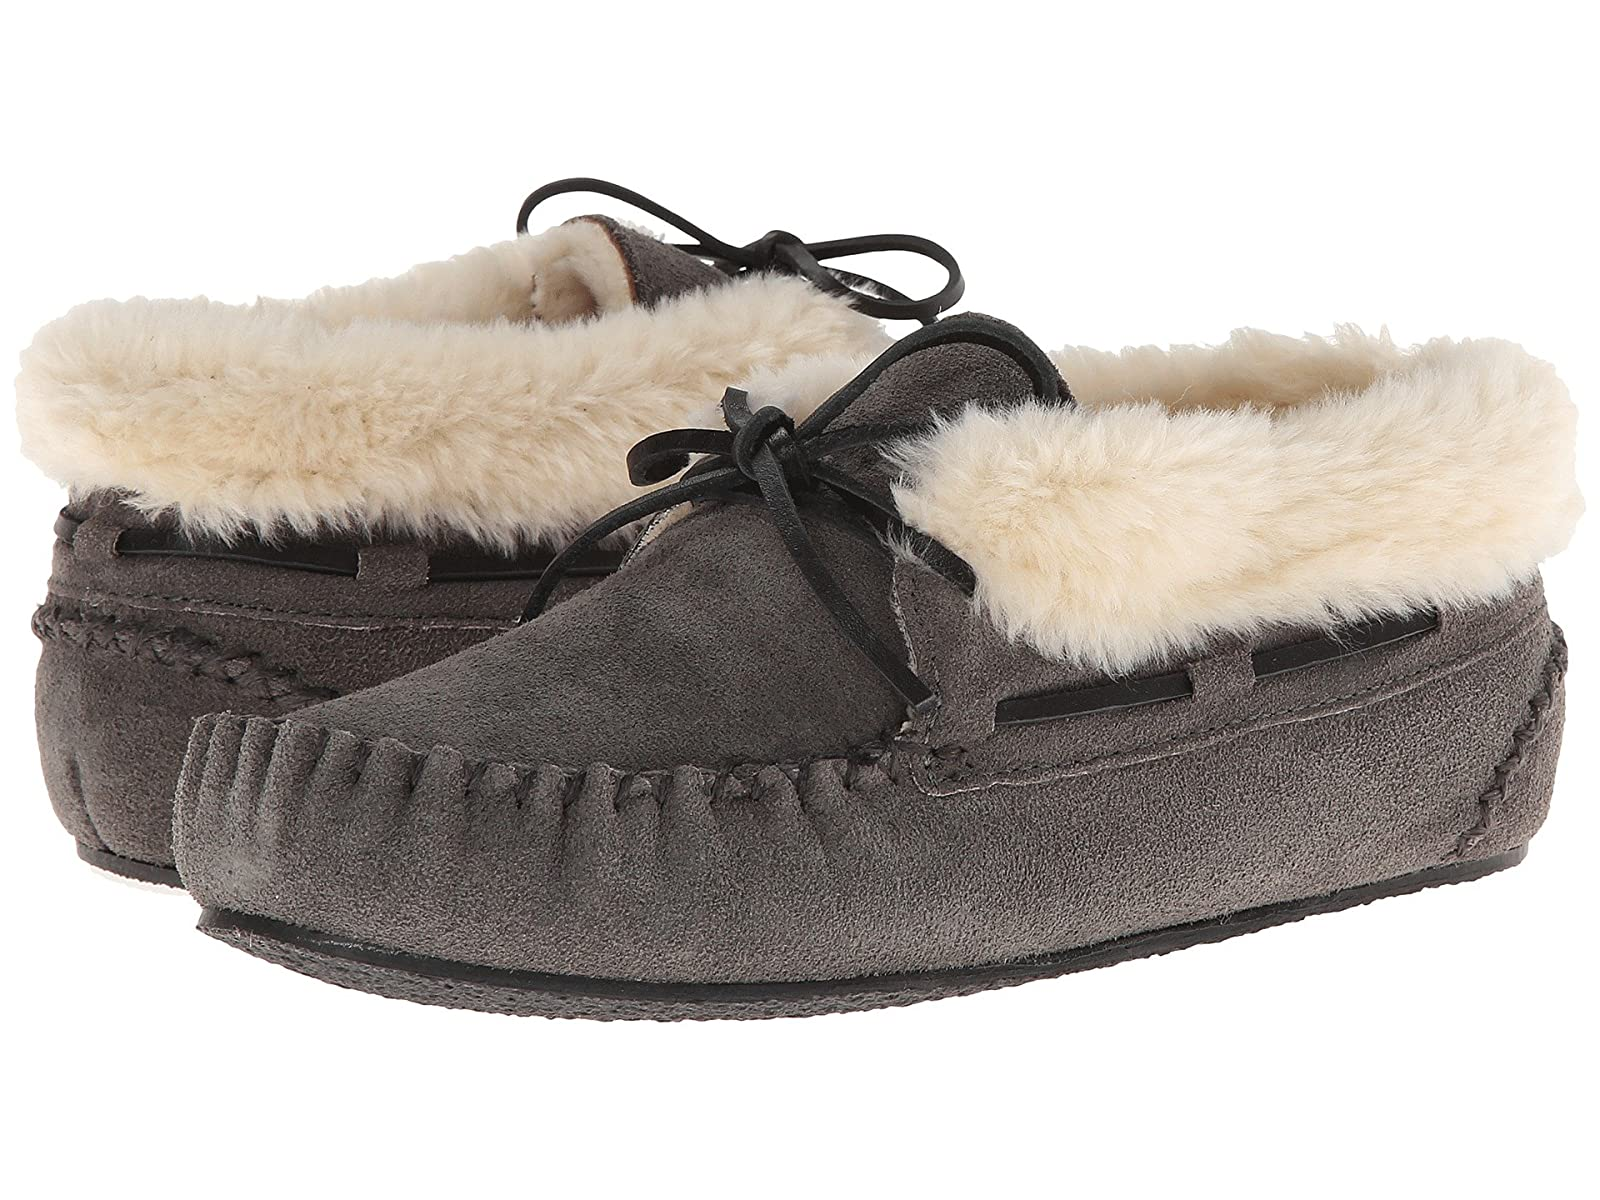 Minnetonka Chrissy BootieAtmospheric grades have affordable shoes